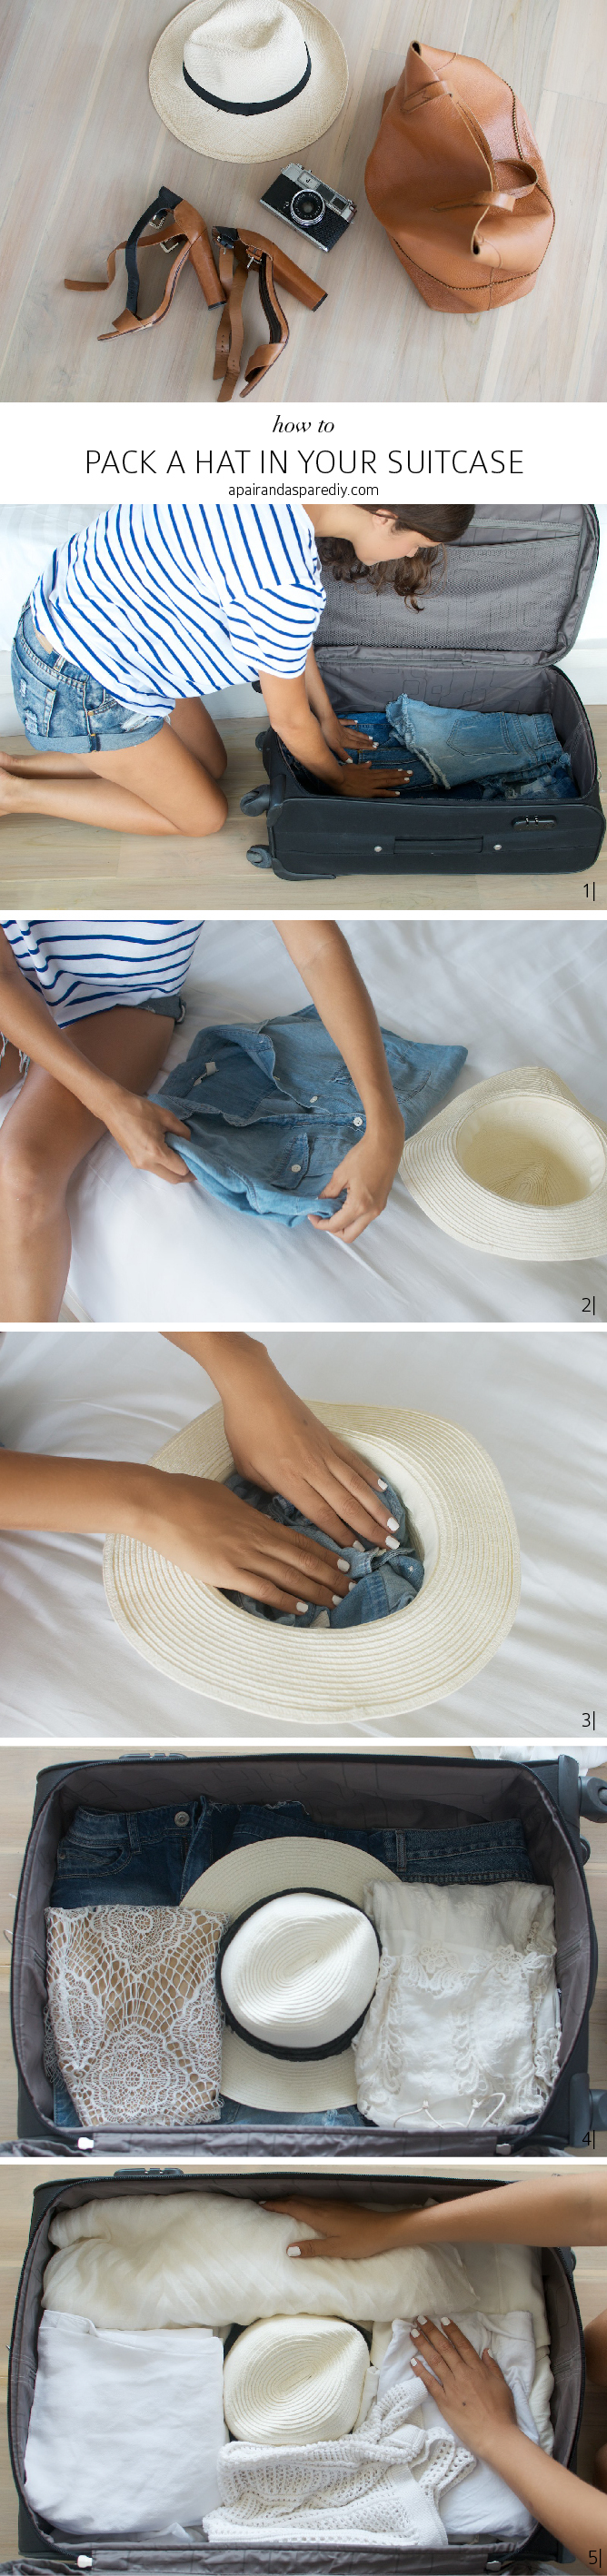 Packing a hat in your suitcase www.apairandasparediy.com